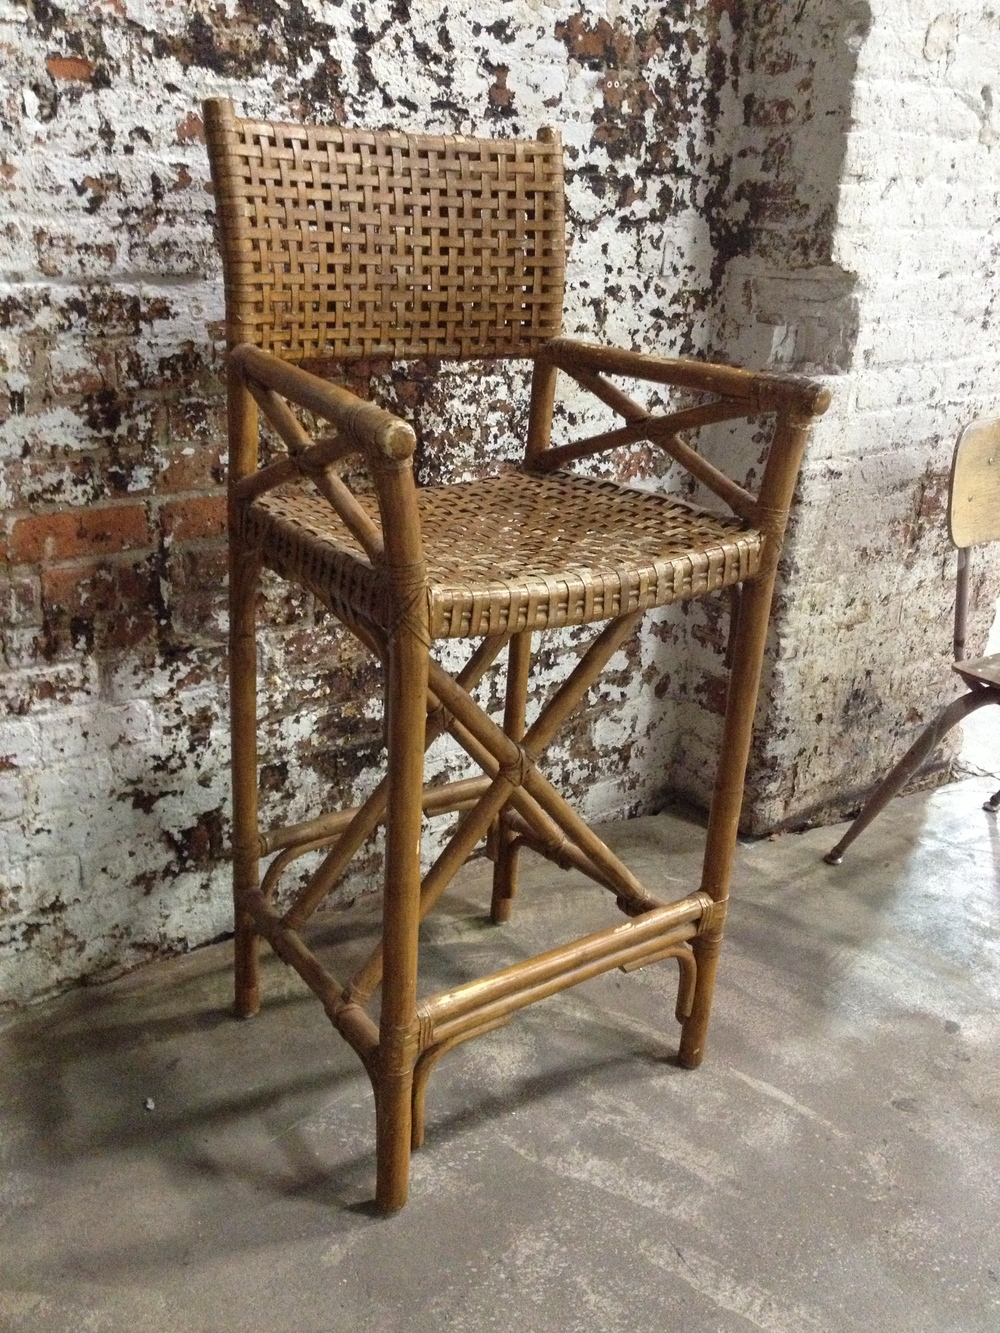 Woven Rattan High Bar Seat $60